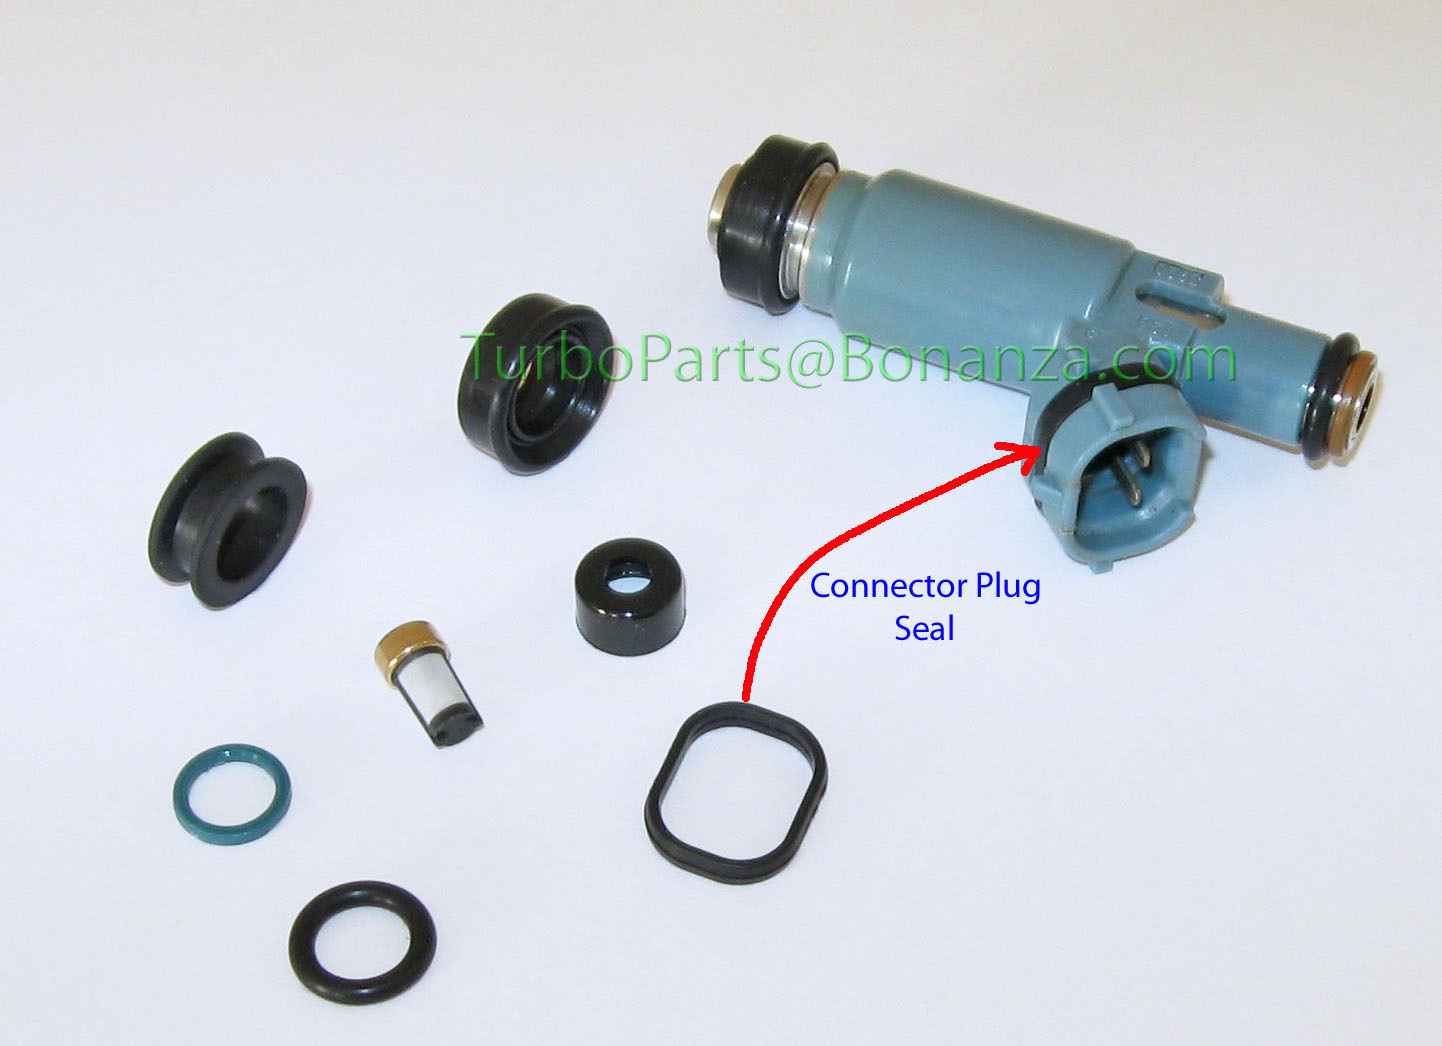 Subaru WRX Imprezza & STI Fuel Injector Seal Repair Kit Seal O-rings Filters